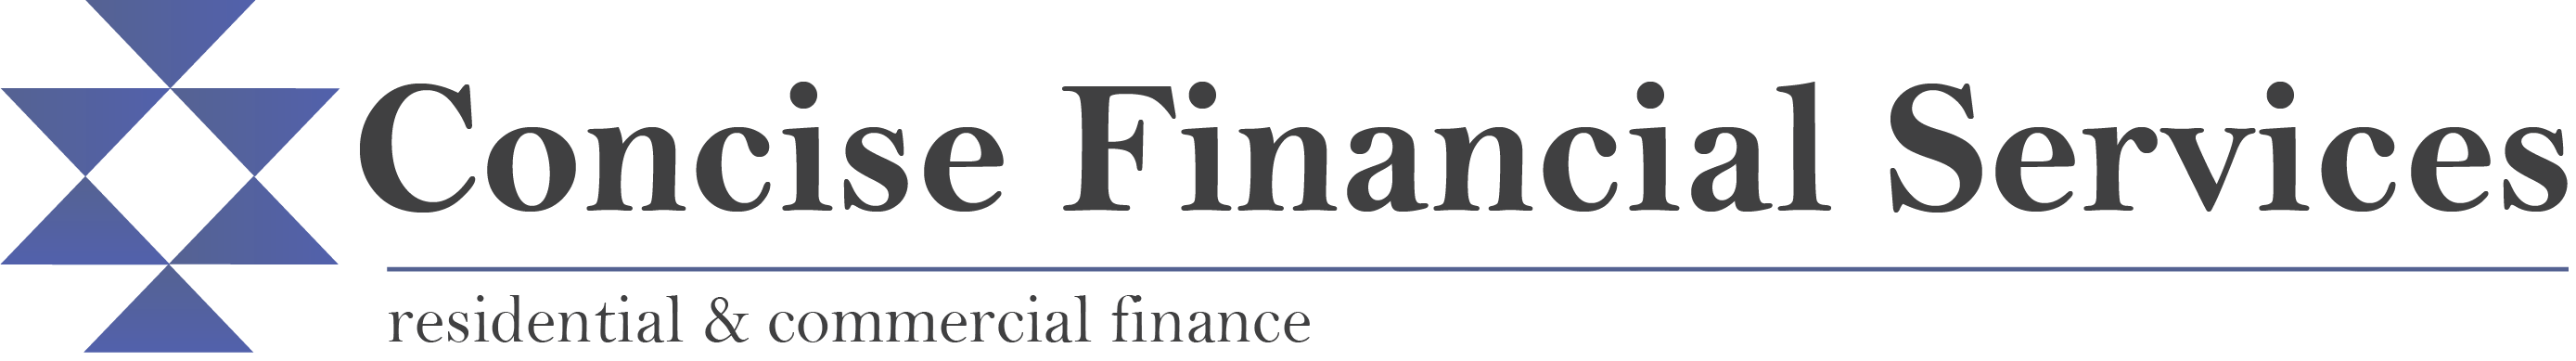 Concise Financial Services